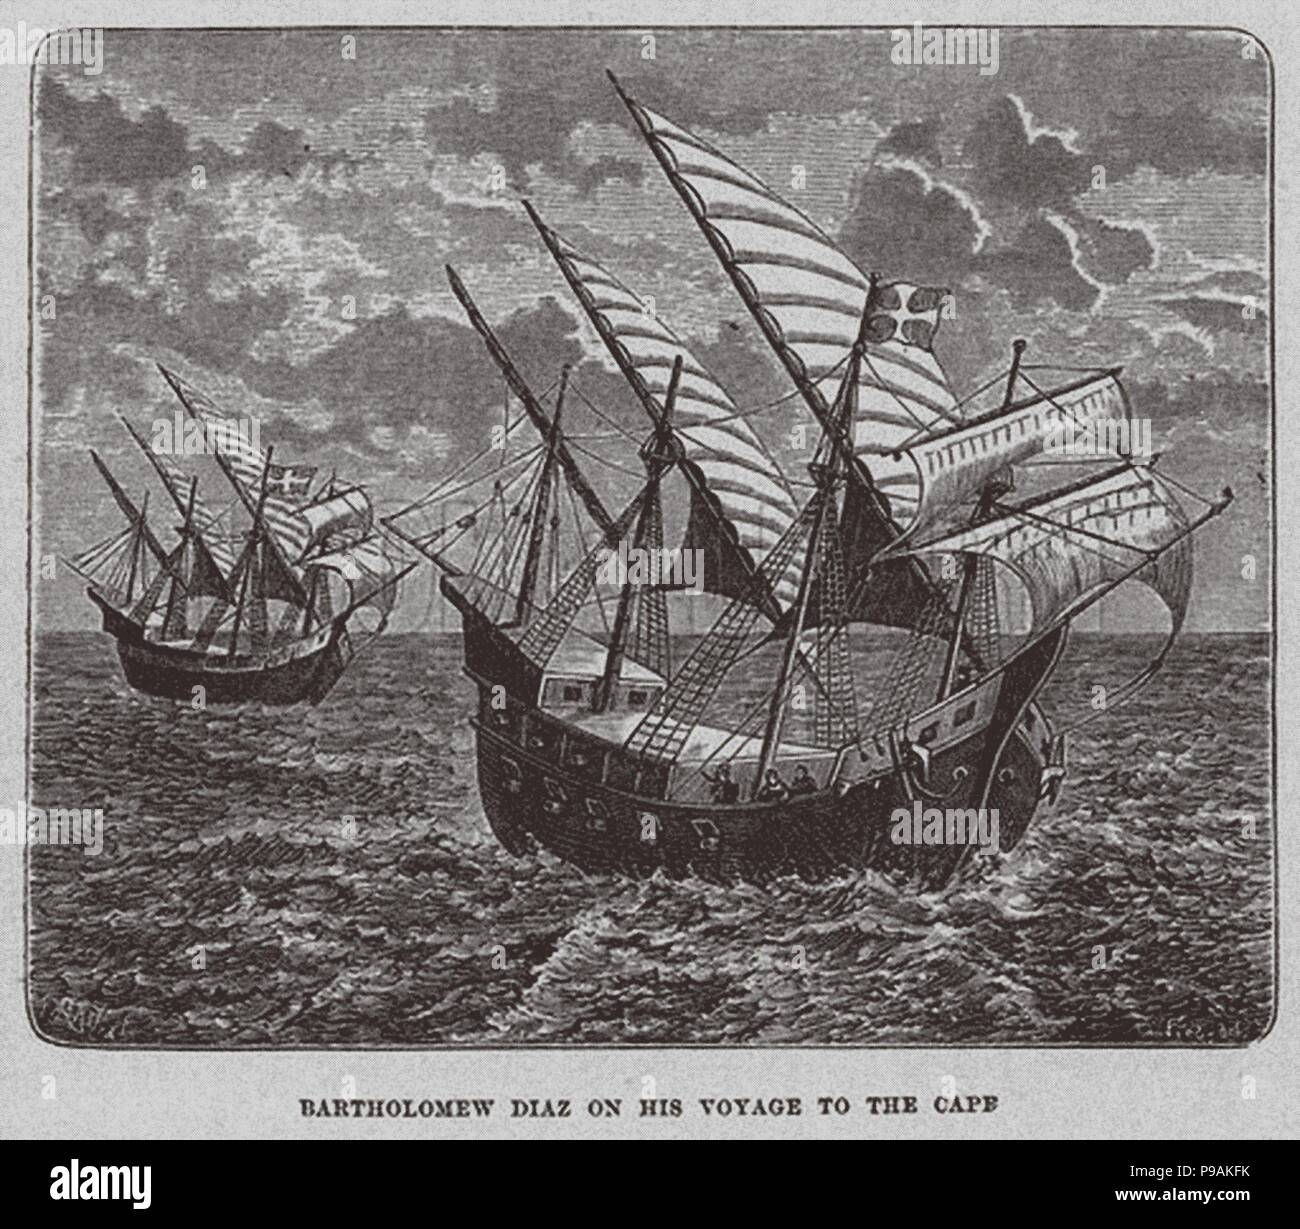 Bartholomew Diaz on his voyage to South Africa. Museum: PRIVATE COLLECTION. - Stock Image